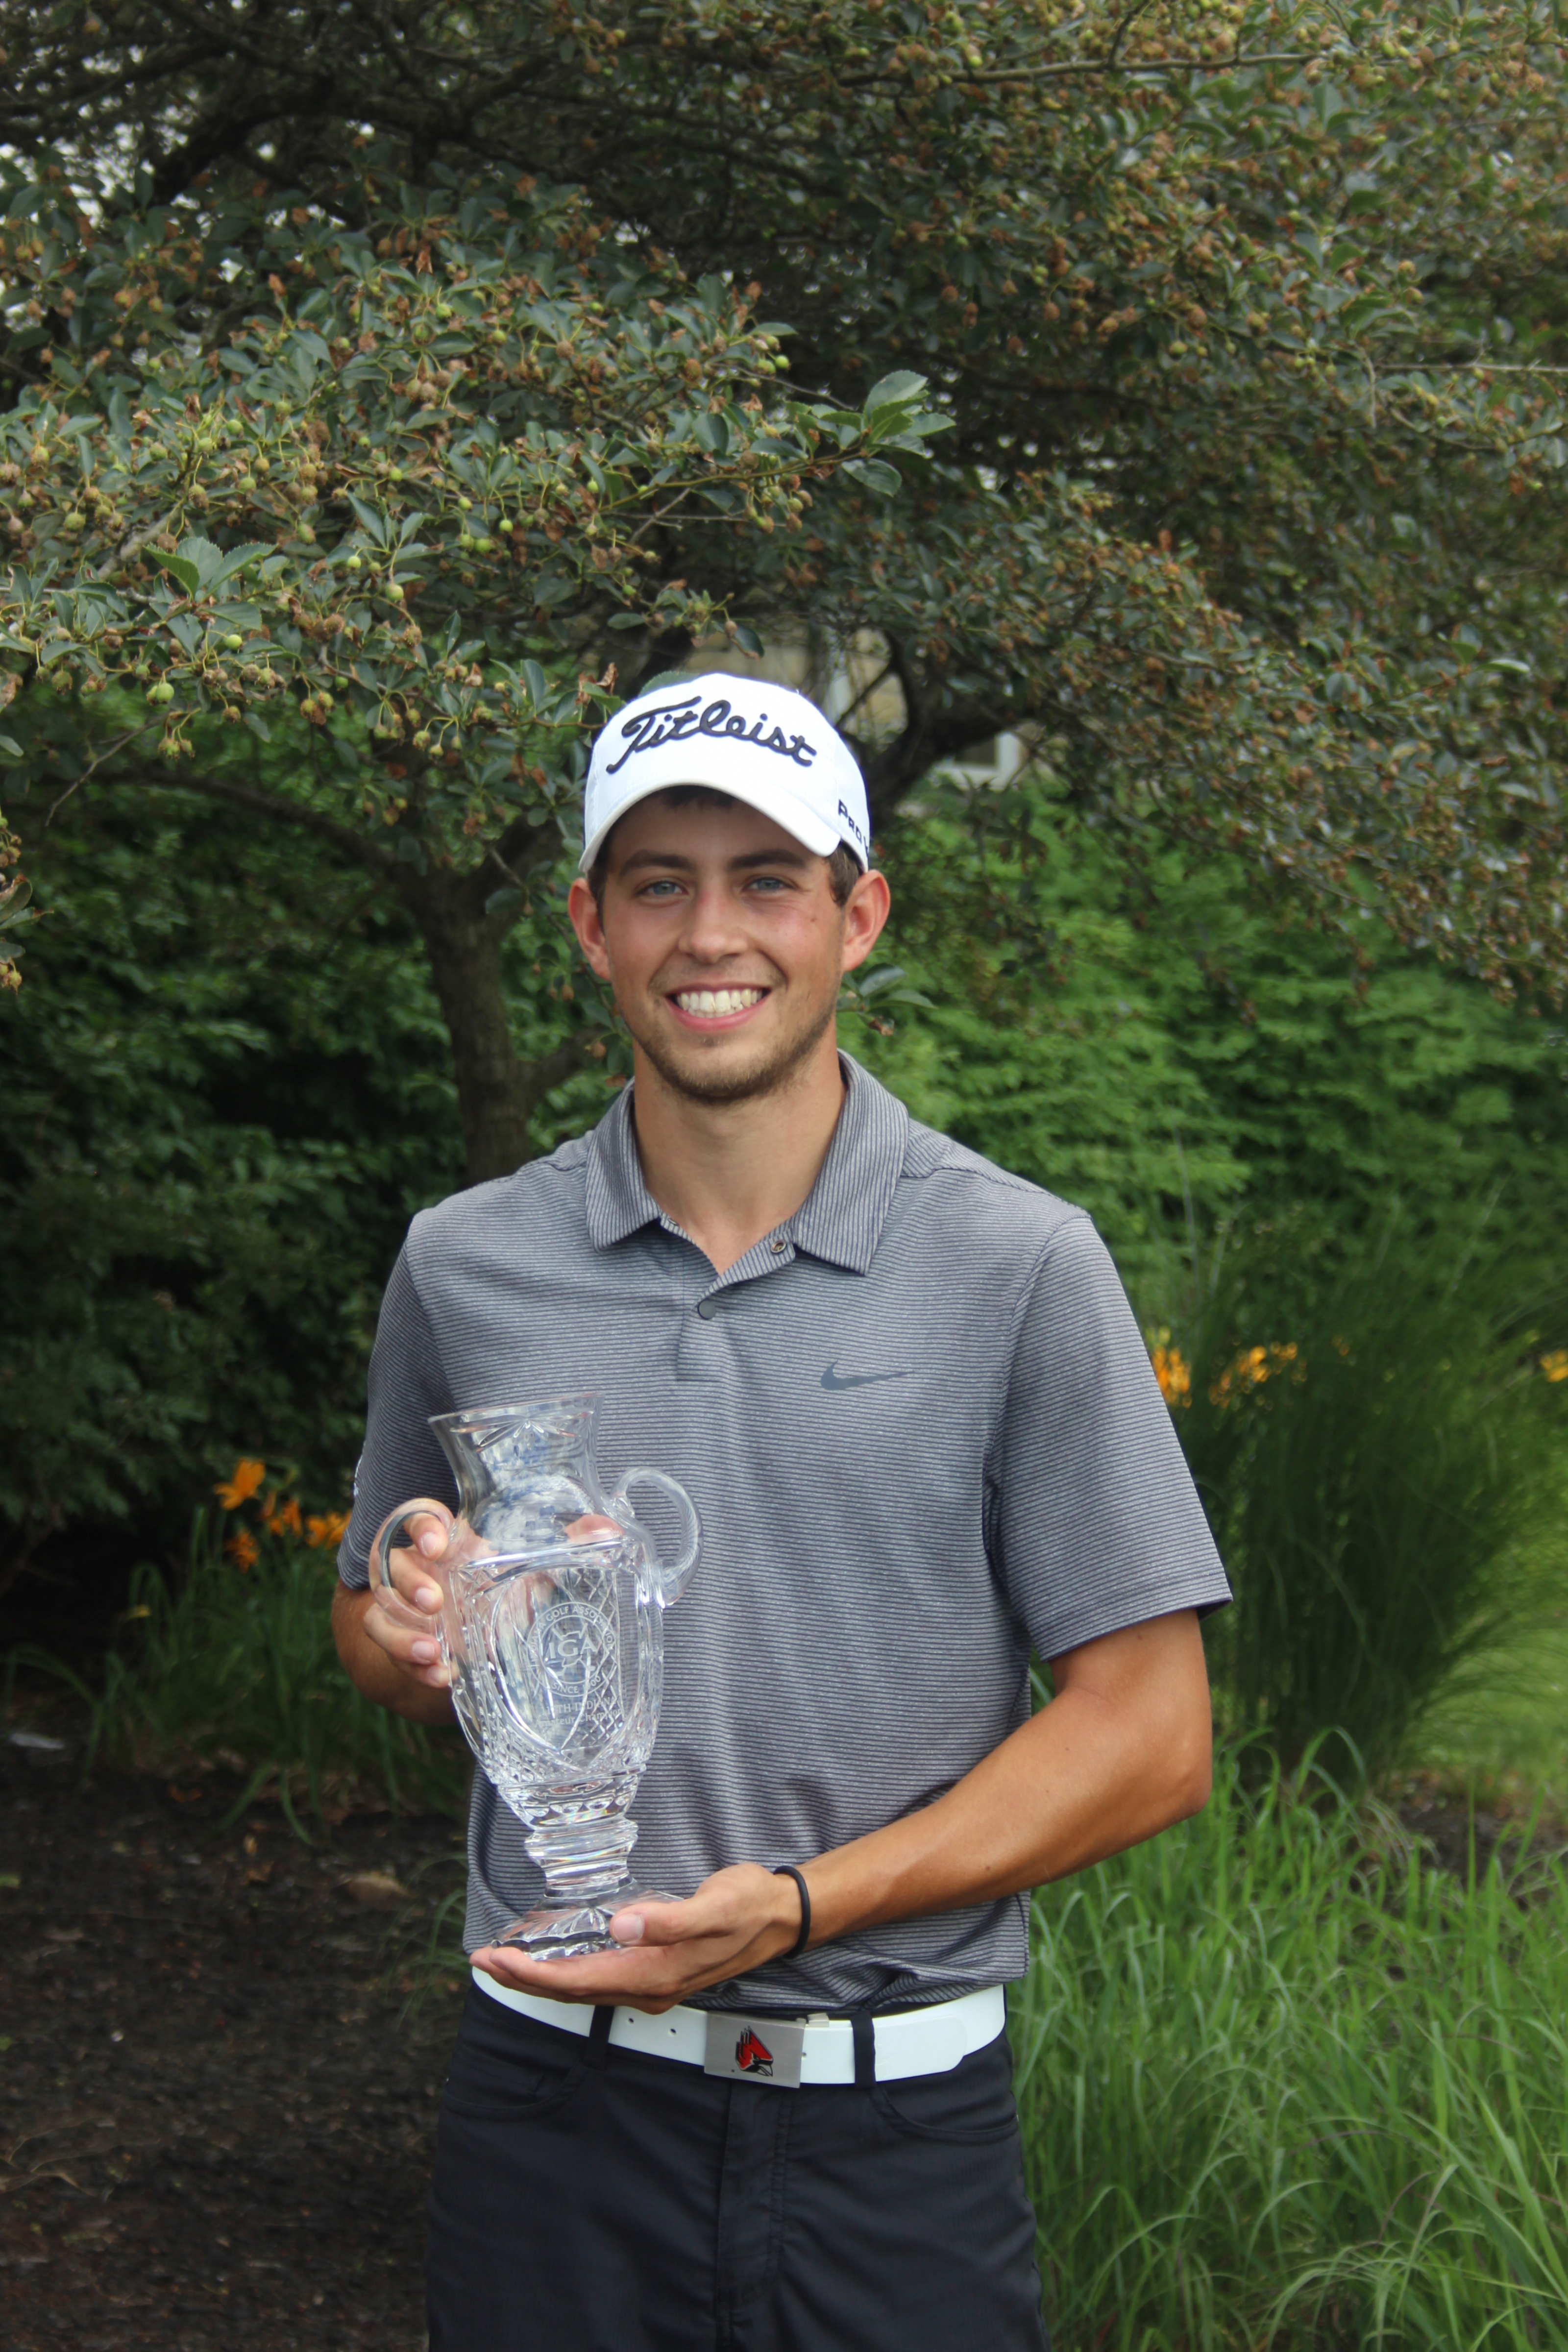 Makris Leads Wire-to-Wire to Win State Am